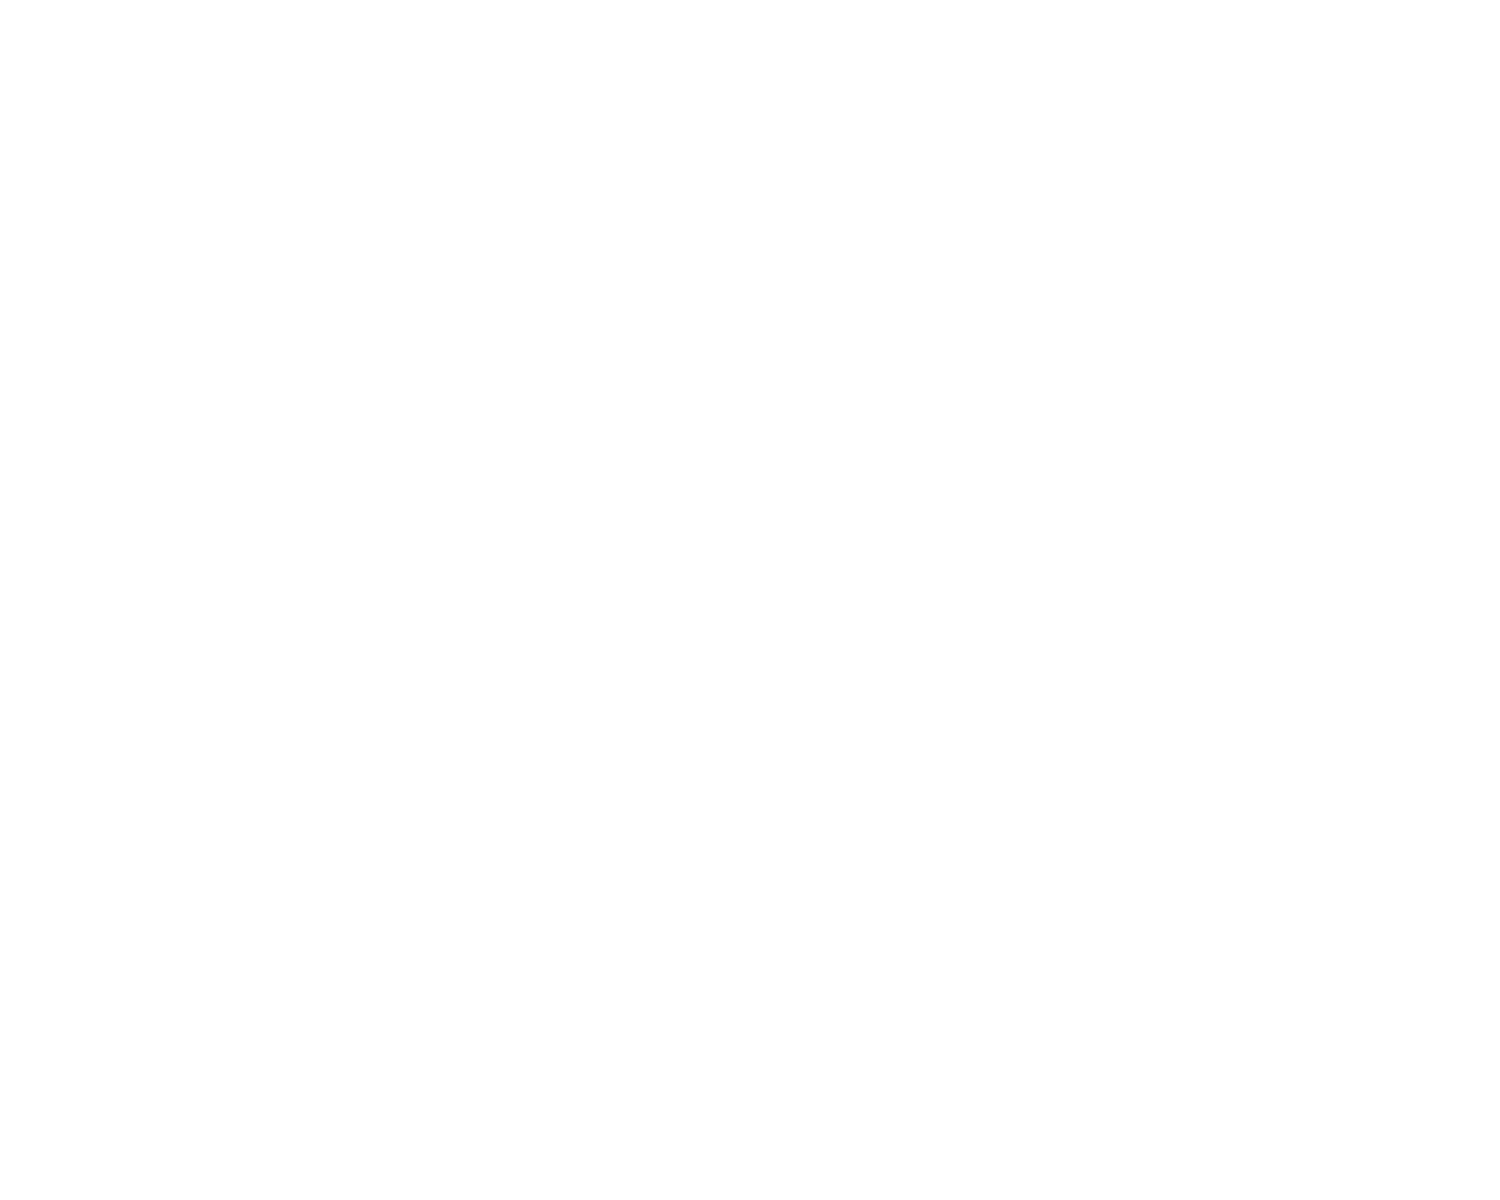 Beyond Elton - An International Elton John Tribute